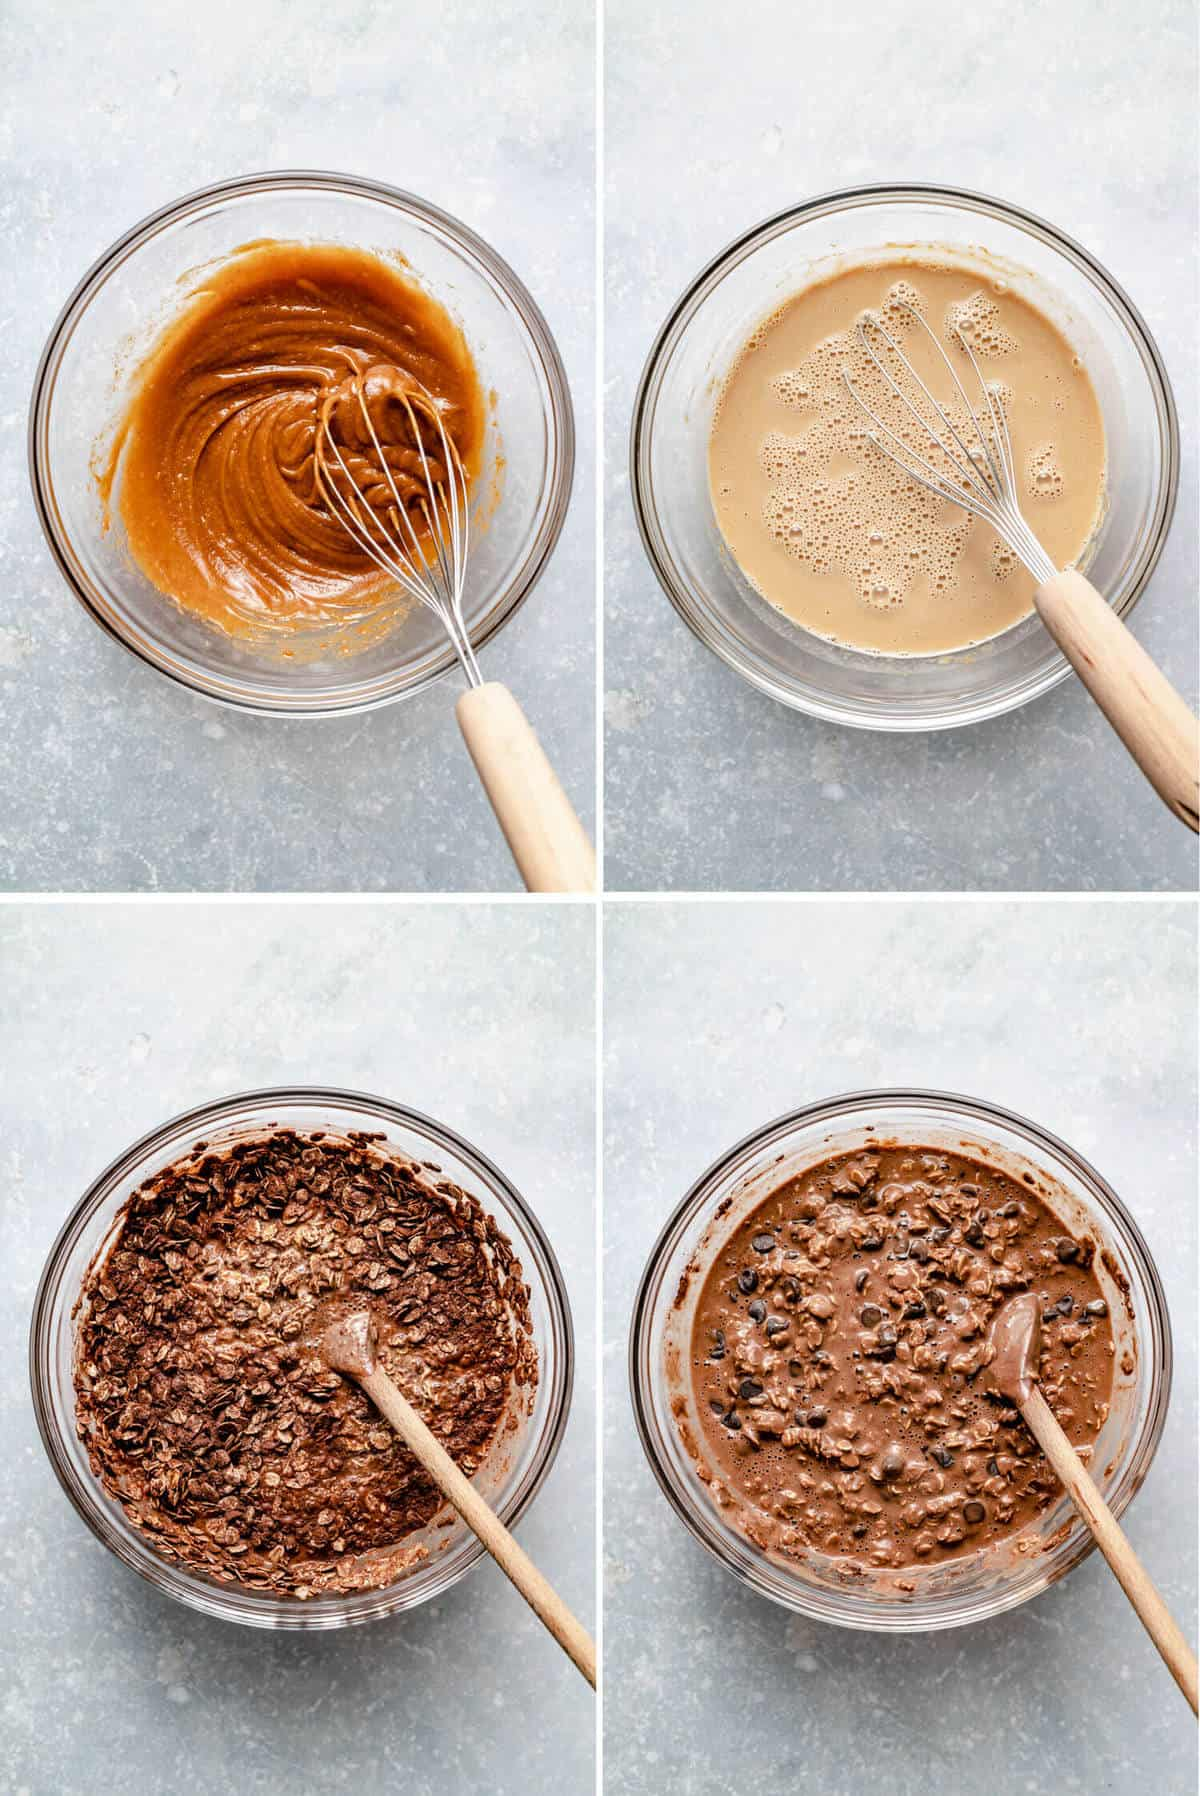 a collage of photos showing the steps of how to make baked oatmeal